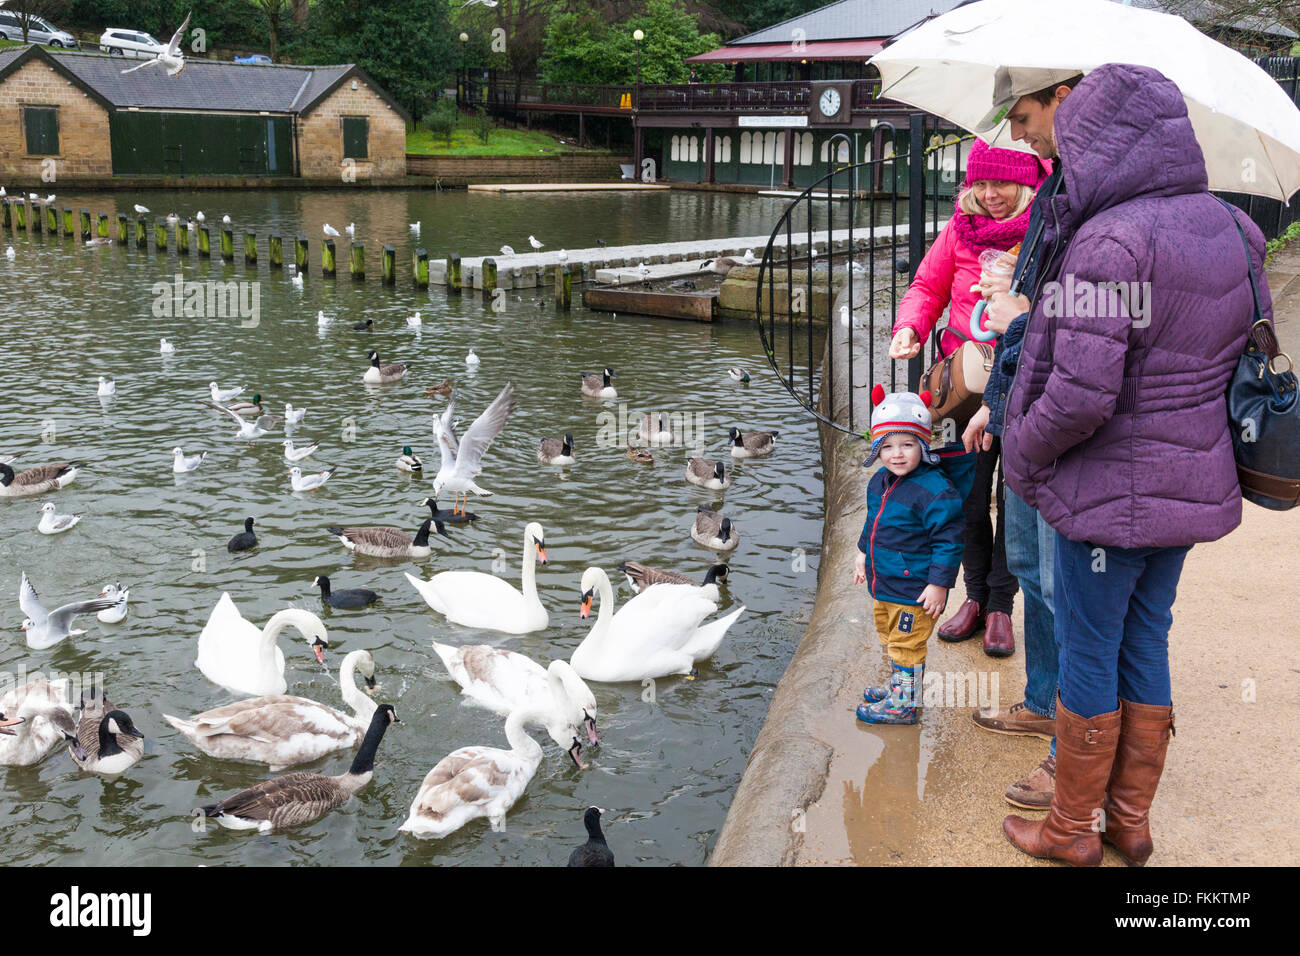 A young family feeding the ducks on a wet day at Roundhay Park, Leeds, Yorkshire UK Stock Photo